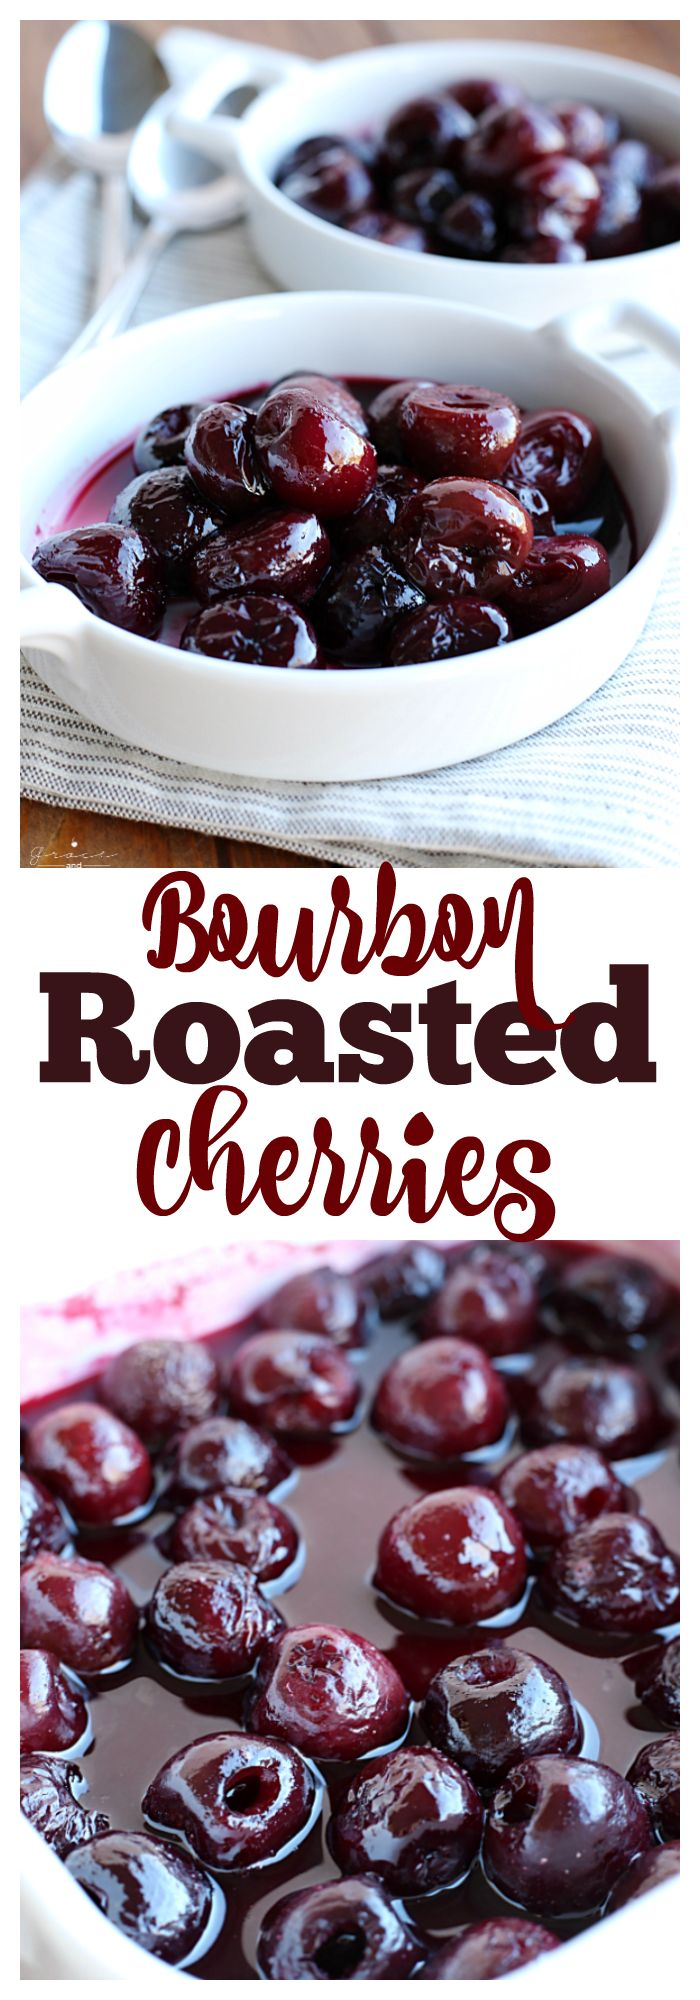 Bourbon Roasted Cherries- this simple fruit compote is perfect over ice cream, cake, or even oatmeal! Works beautifully with frozen fruit and keeps in the refrigerator for up to two weeks.